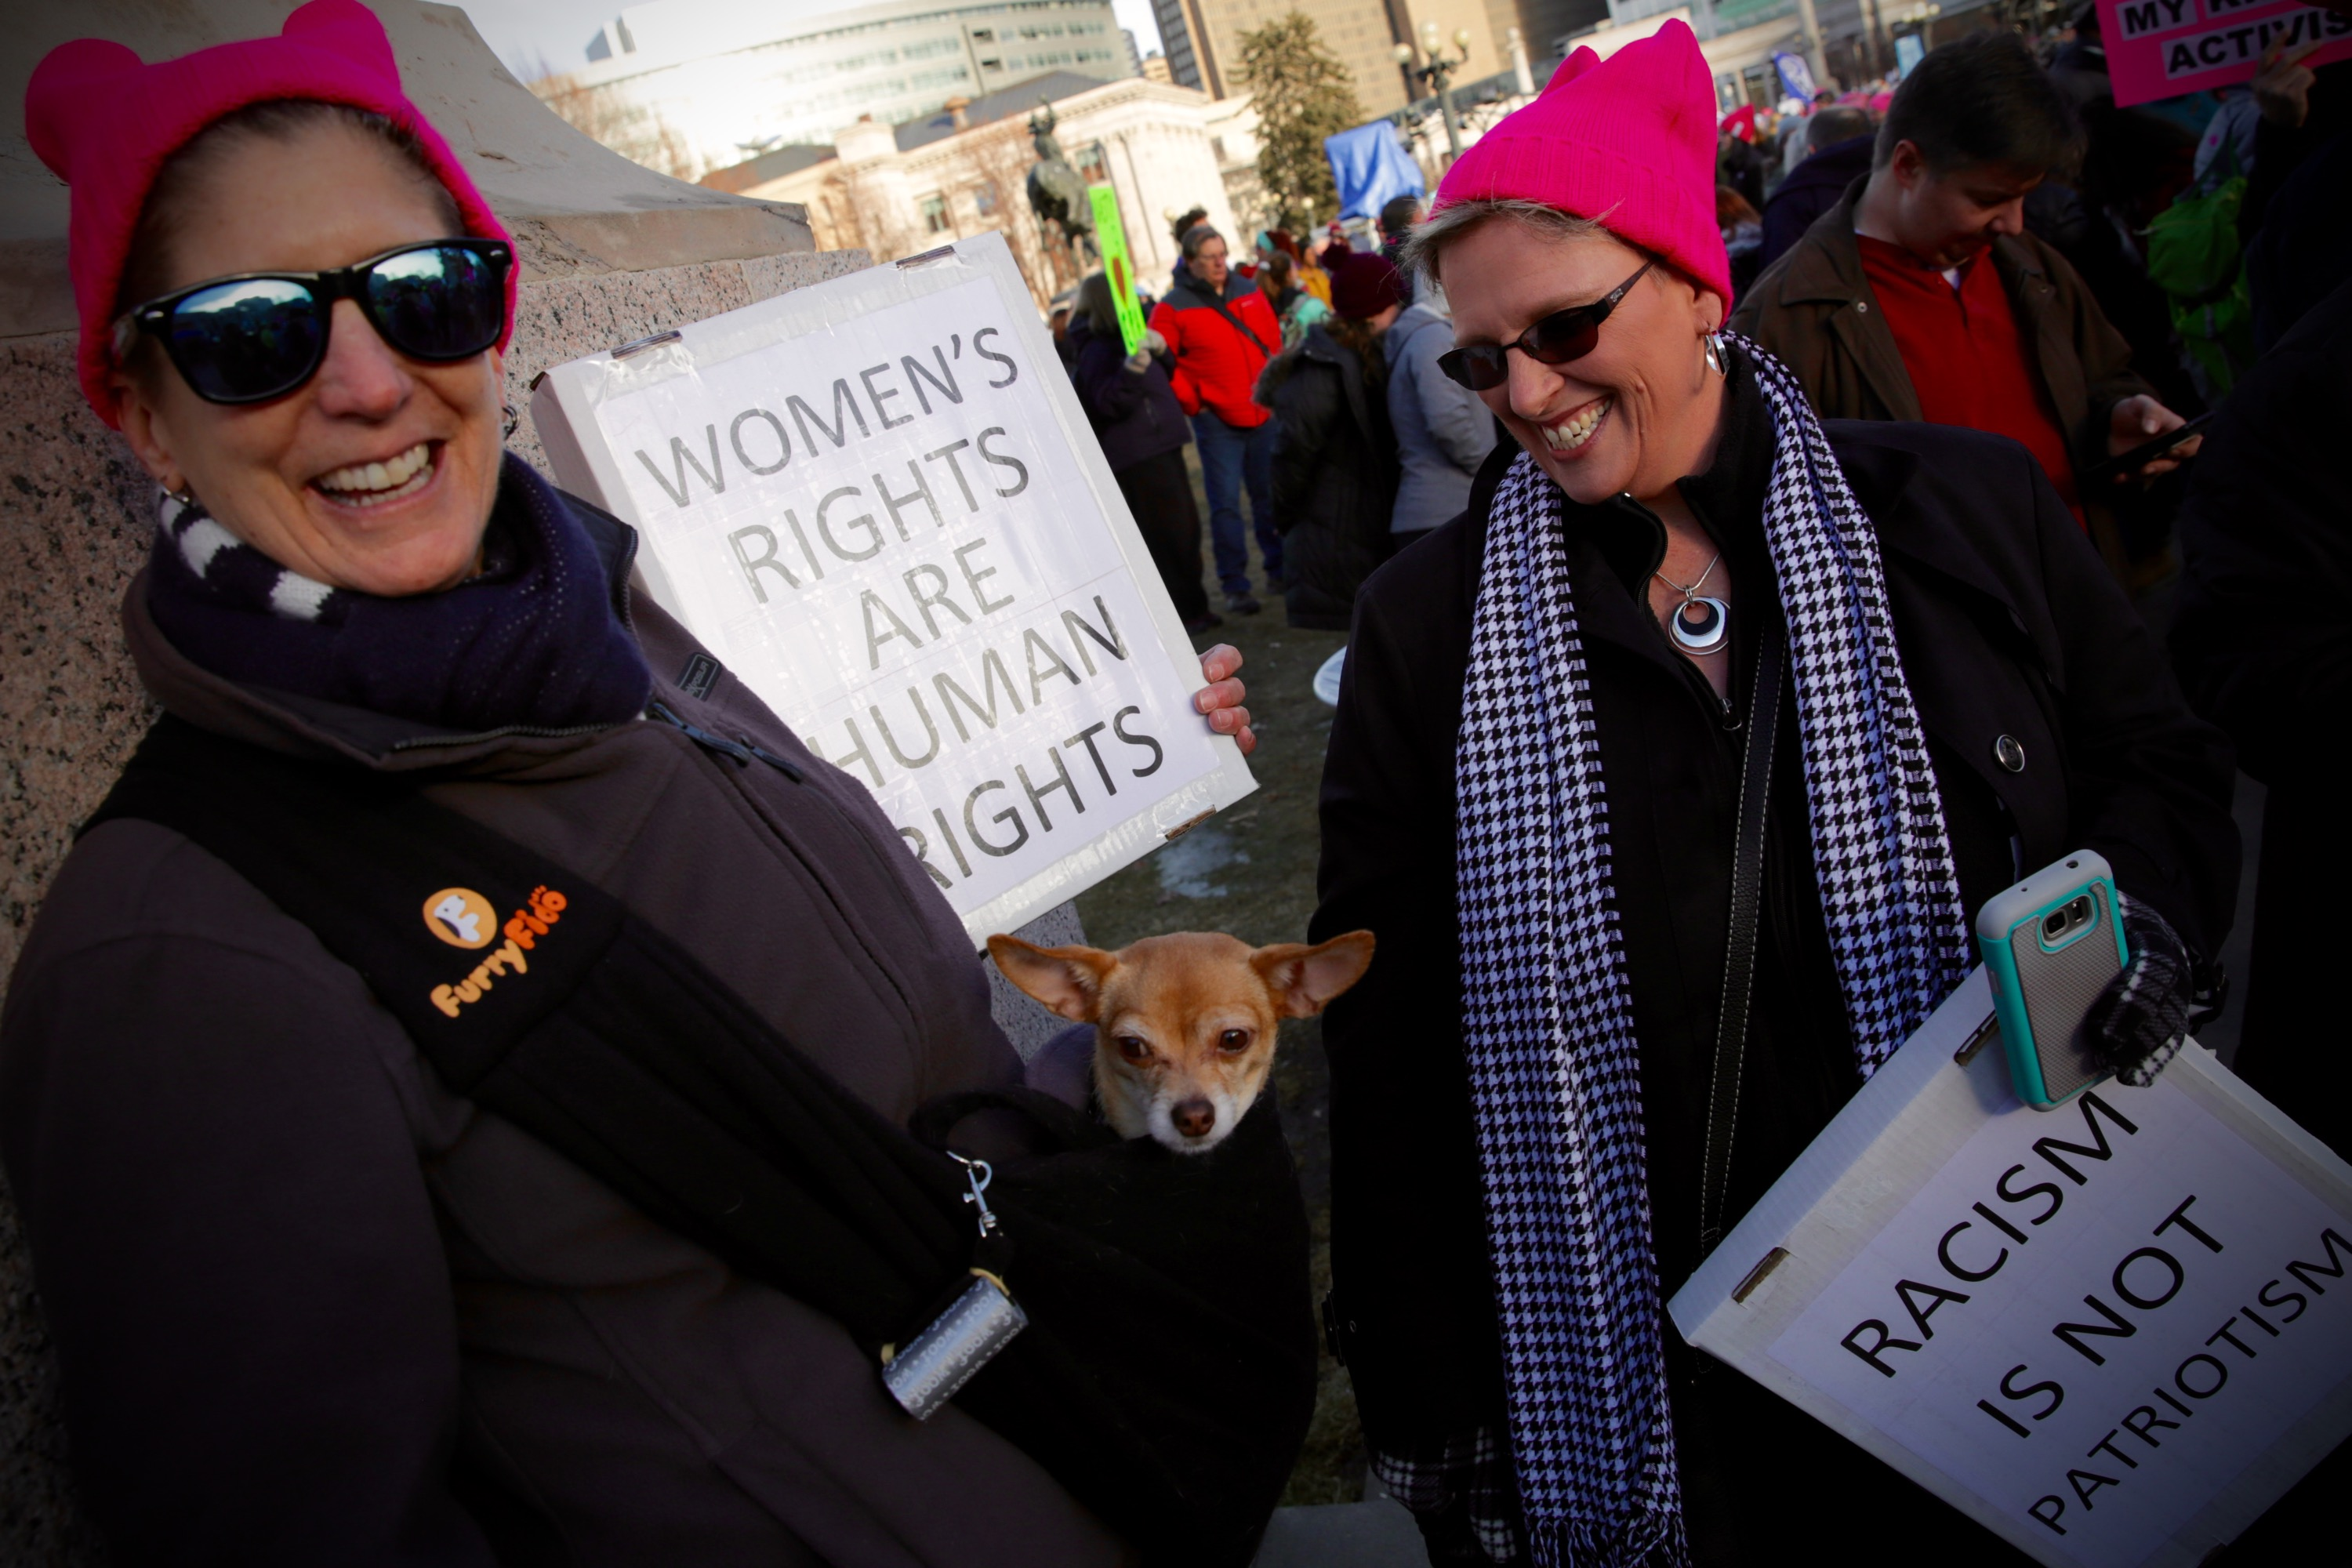 <p>Tracie Schmidt of Denver, at left, and her little dog Lola at the 2018 Women's March in Denver.</p>